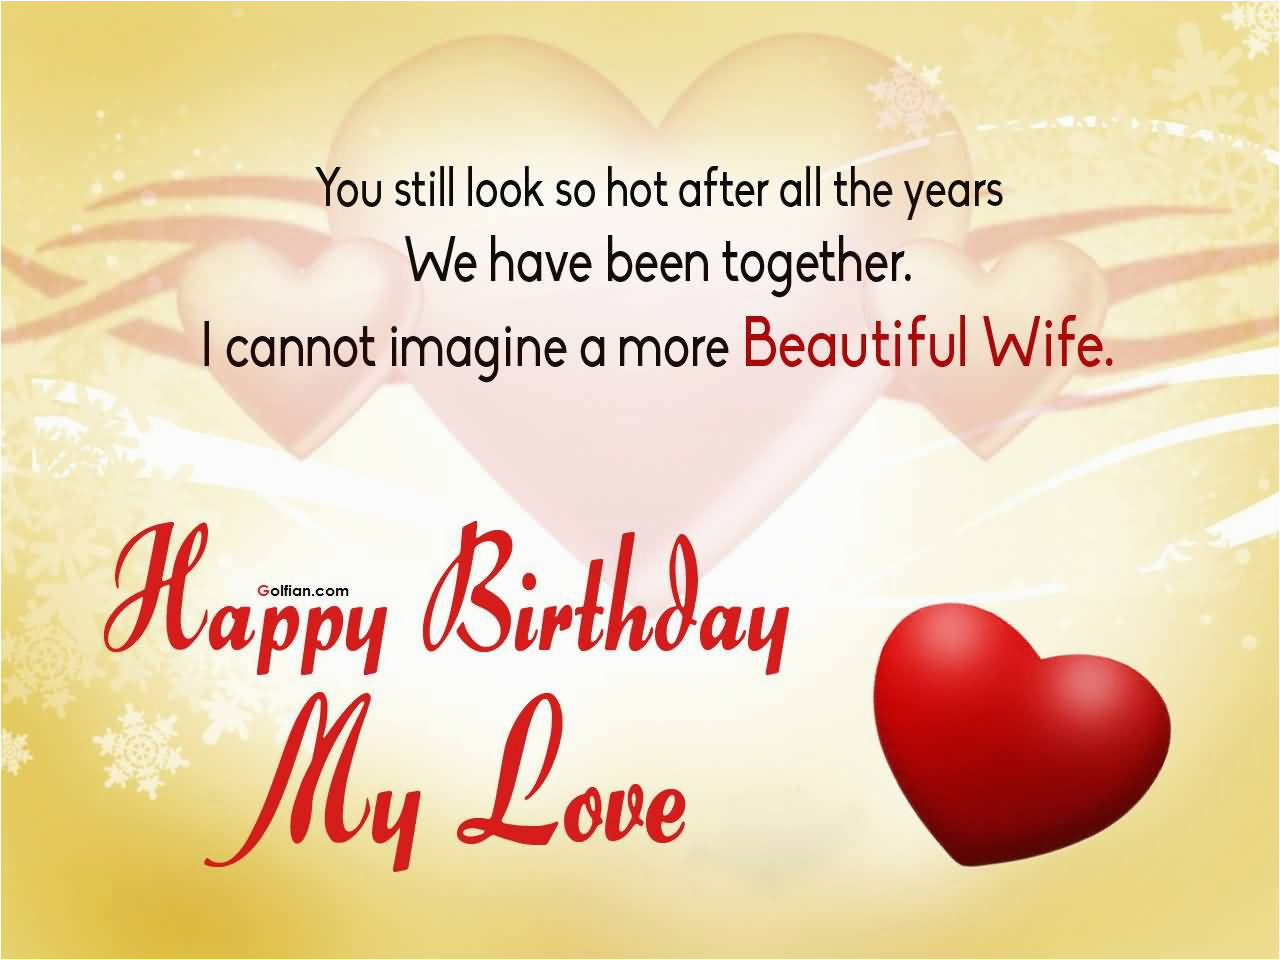 60 most beautiful wife birthday quotes nice birthday sayings for life partner